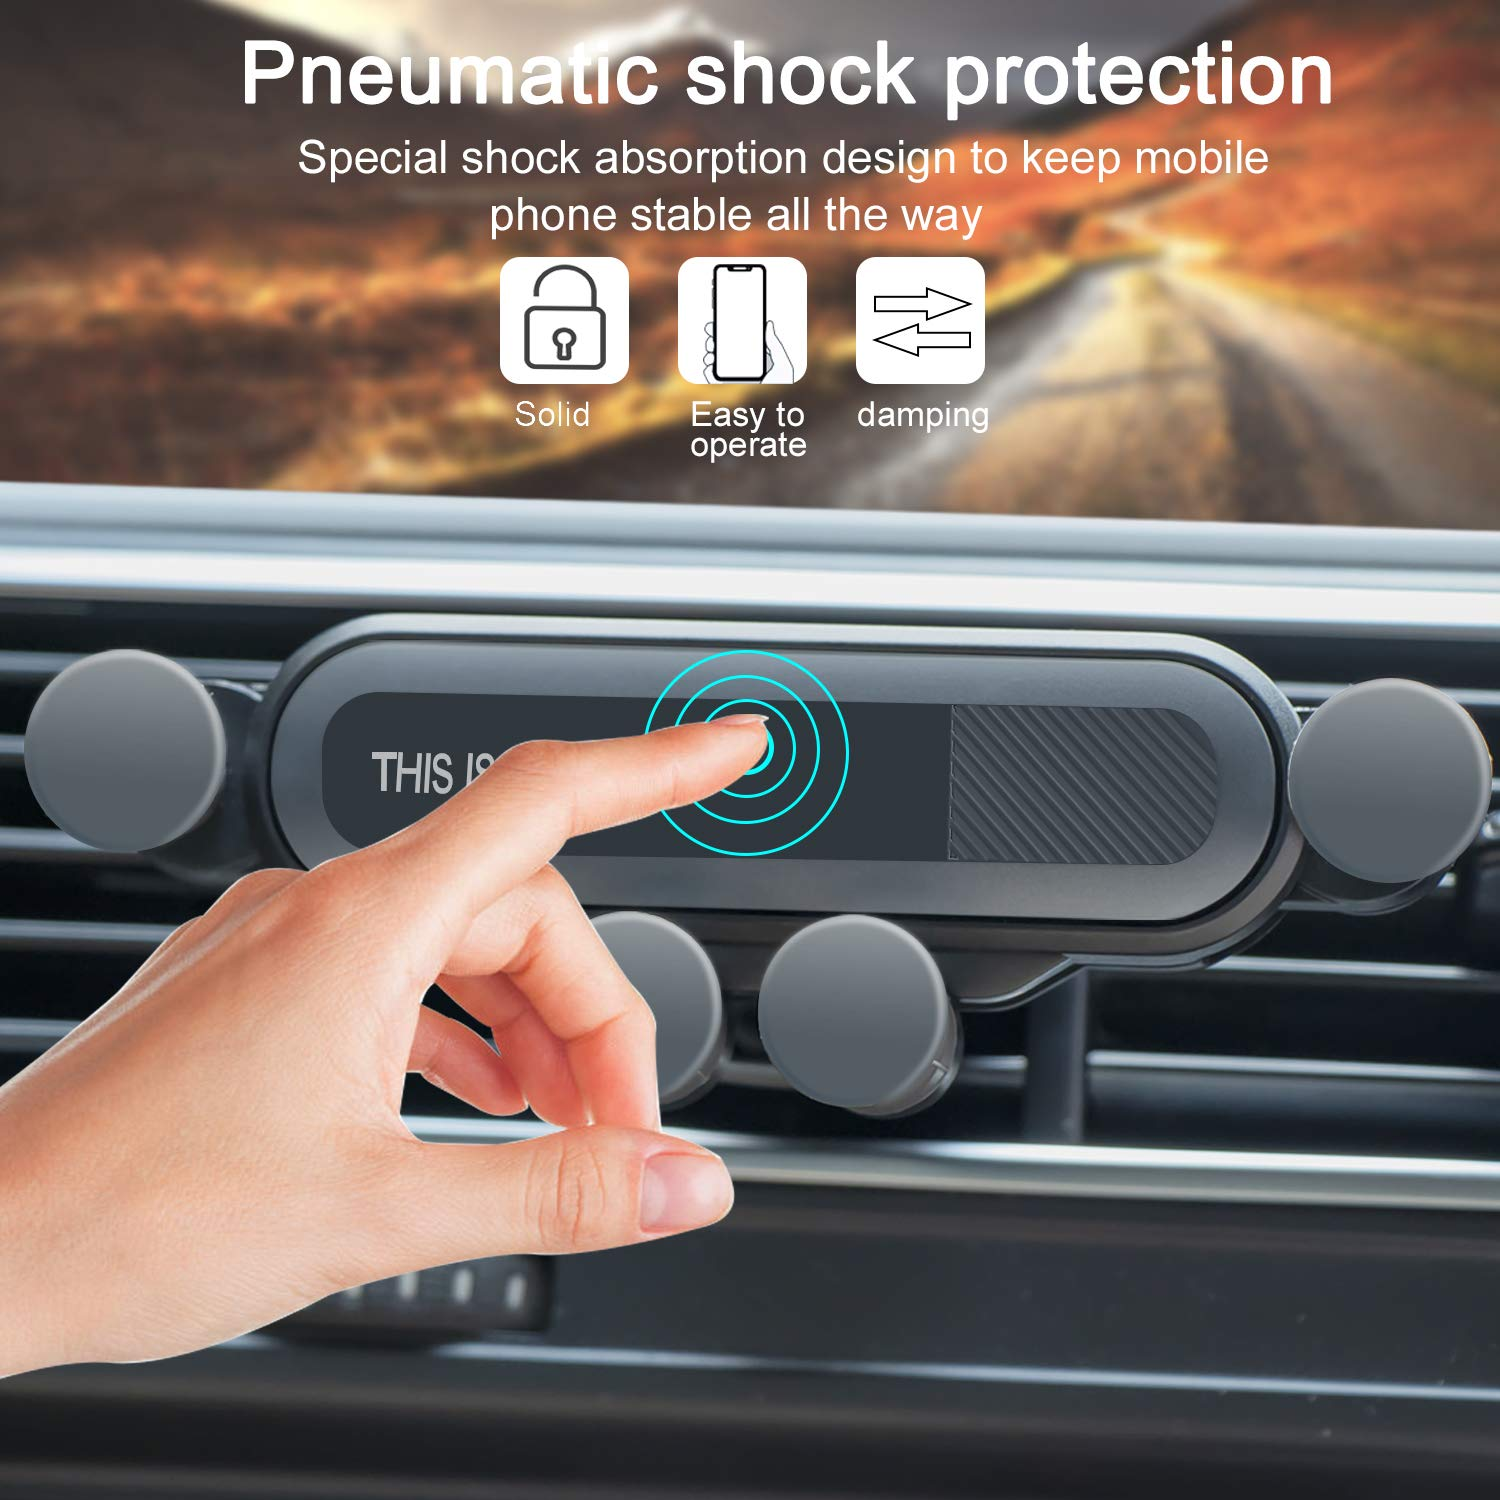 7//7 Plus Samsung Galaxy S 8//8 Plus Car Phone Mount,Car Vent Cell Phone Holder Car Air Holder Automatic Locking Cell Phone Holder With Pneumatic Shock Protector Compatible For Iphone Xs//Xs Max//Xr//X